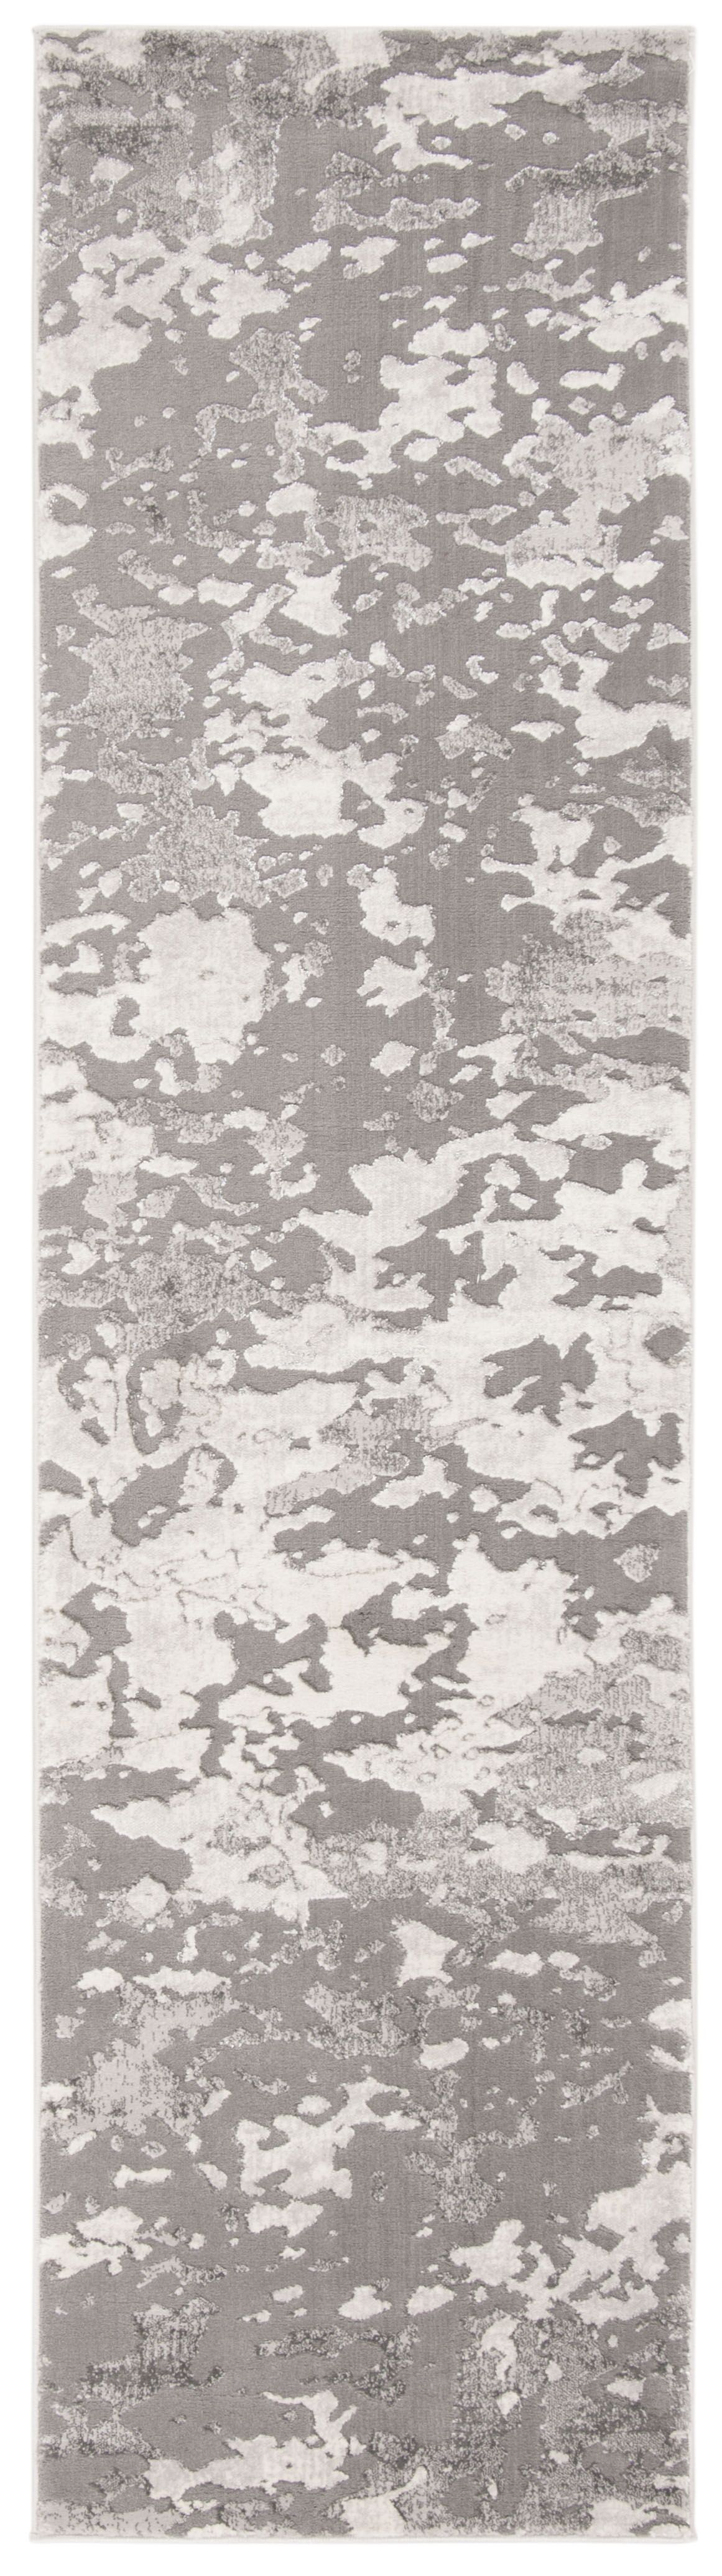 Dulce Gray/Light Gray Area Rug Rug Size: Rectangle 4' x 6'